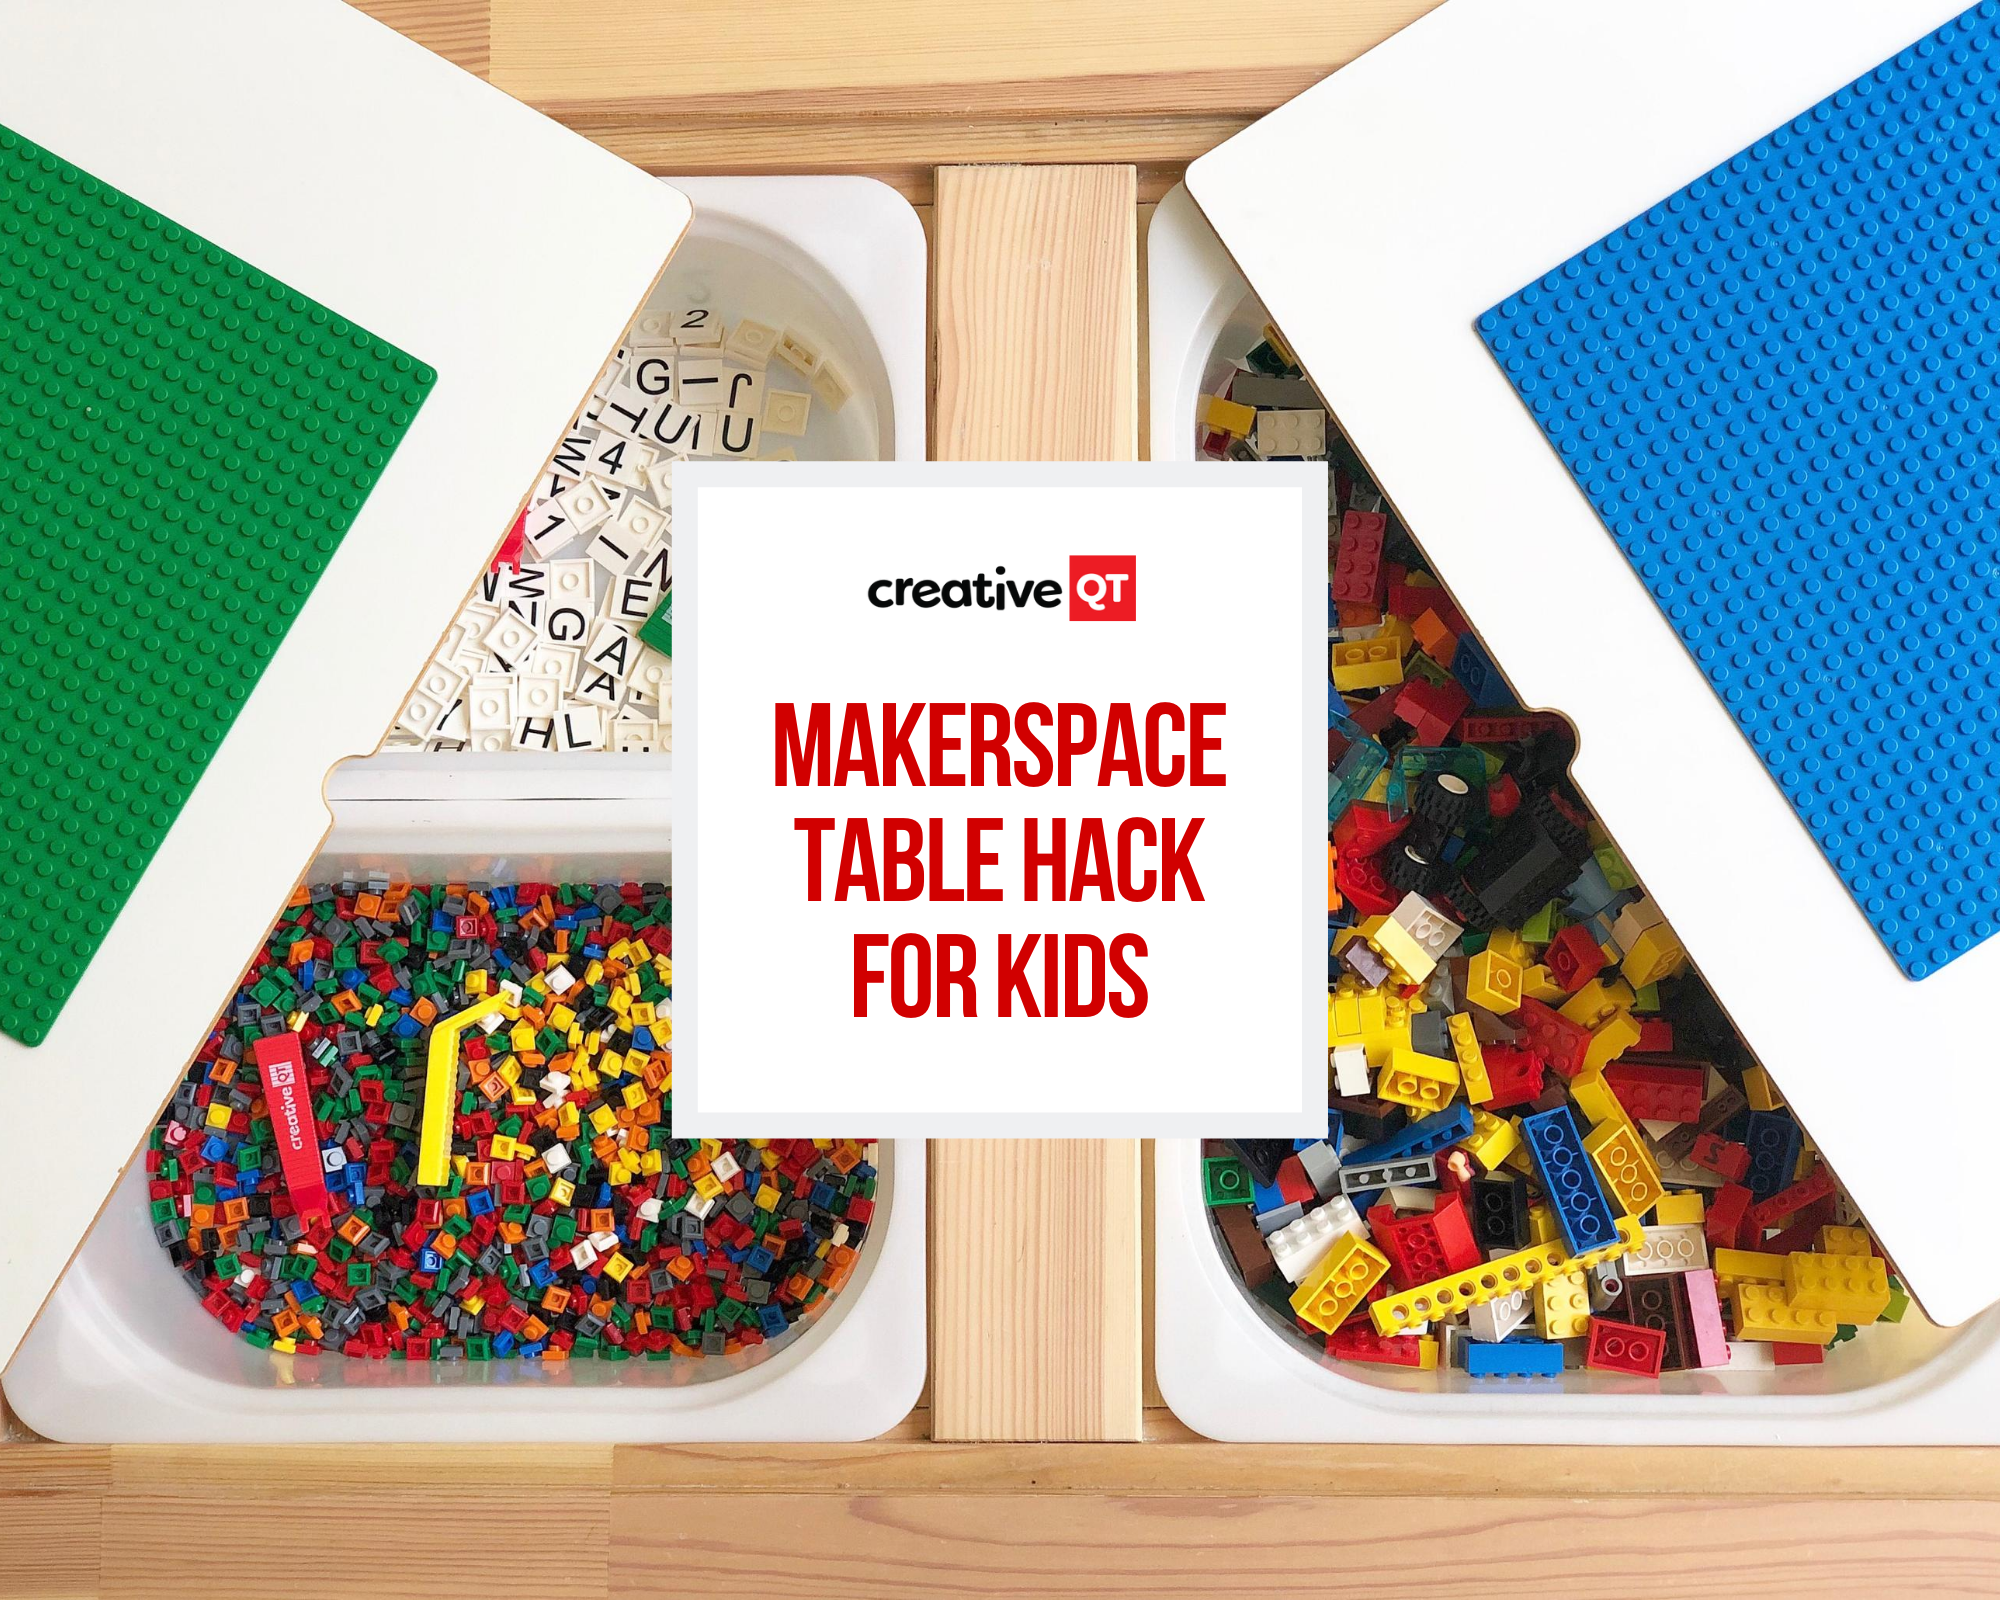 Makerspace Table Hack for Kids